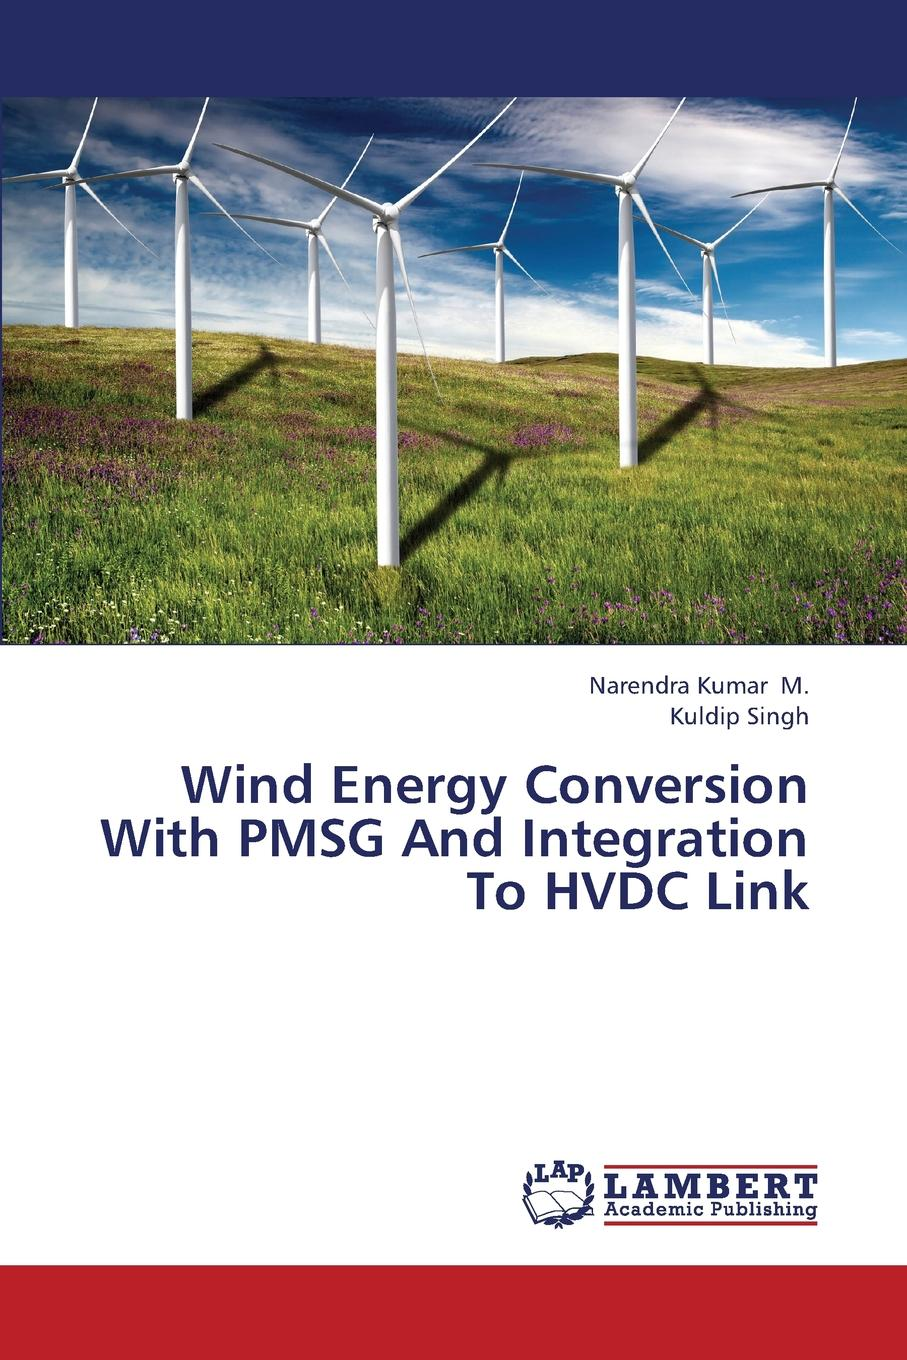 M. Narendra Kumar, Singh Kuldip Wind Energy Conversion with Pmsg and Integration to Hvdc Link professional power conversion socket us to eu universal power adaptor high quality travel plug converter bs